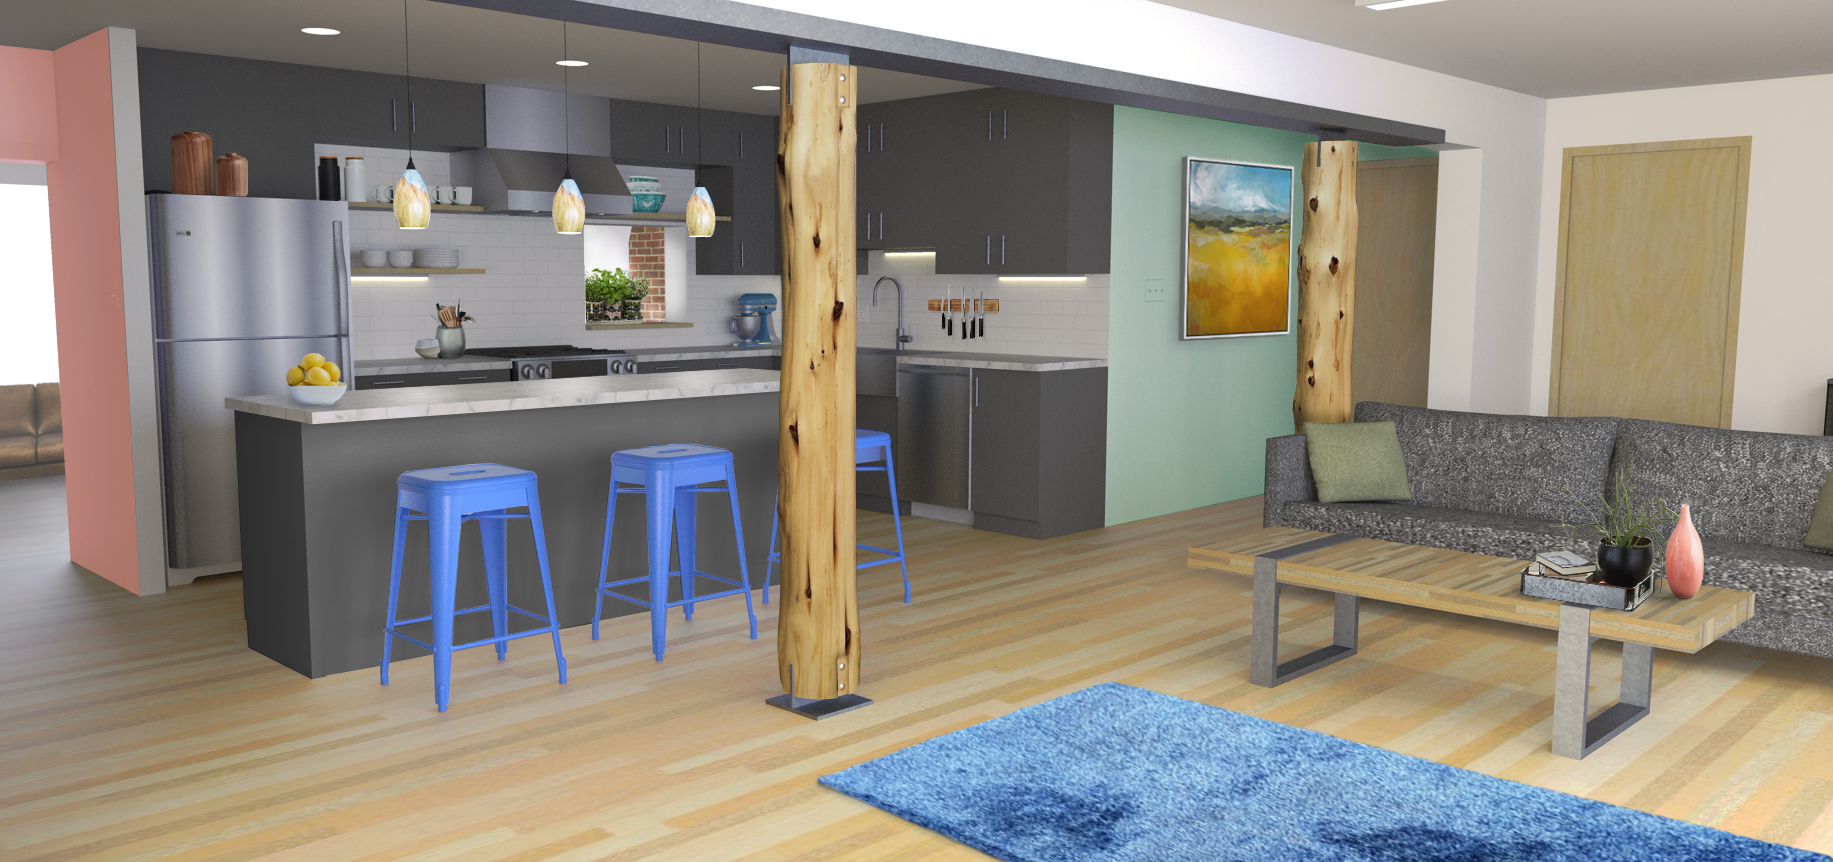 A rendering of the finished kitchen and living room. Rendering by Erin O'Loughlin, Heise Design Studio.